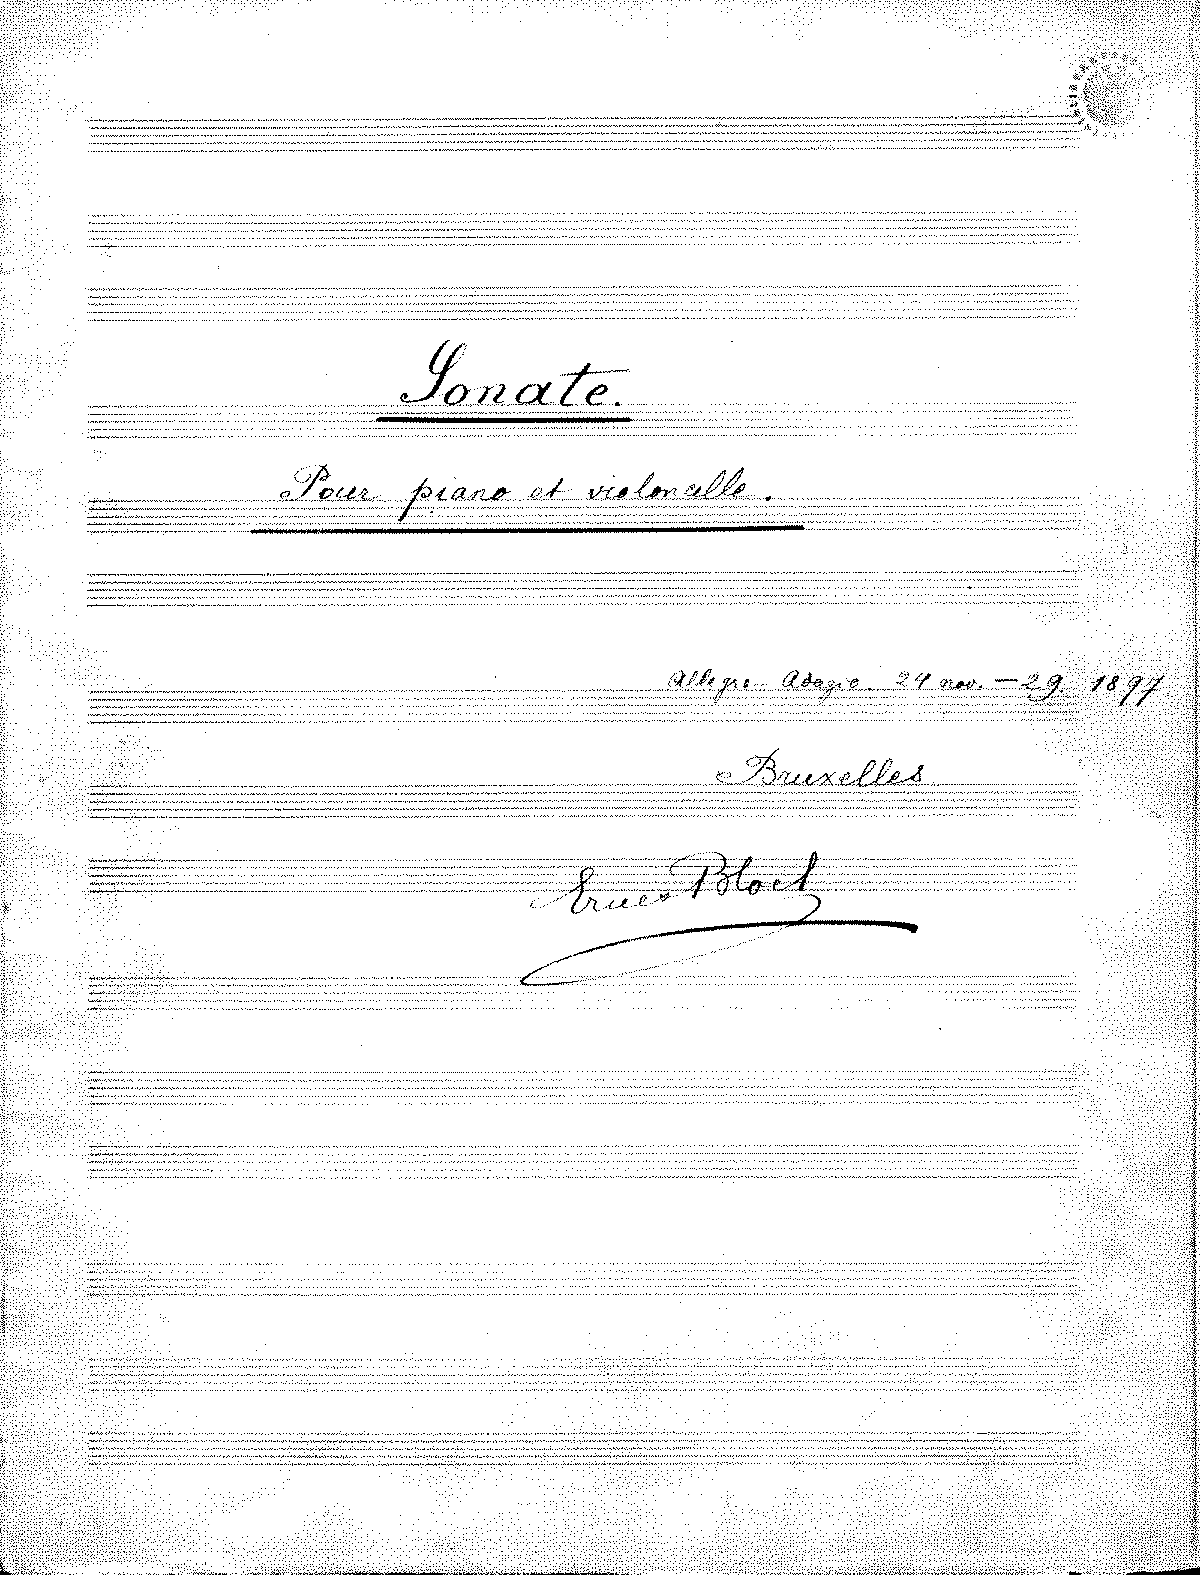 PMLP104871-Bloch - Sonata for Piano and Cello (1897) manusc piano.pdf